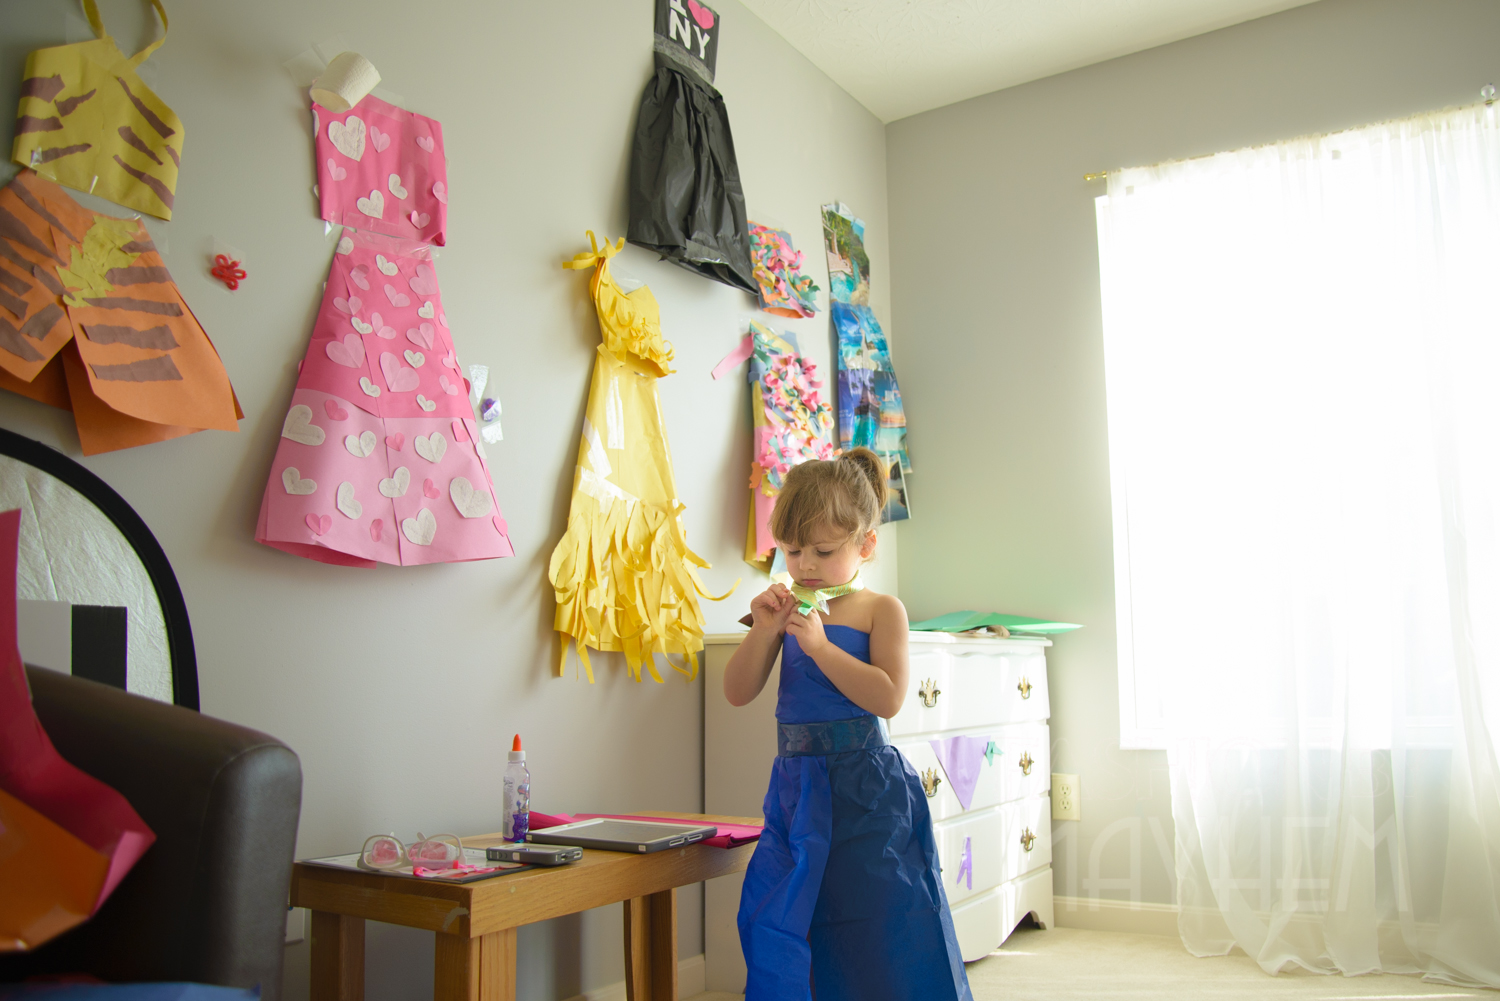 What We Do With The Dresses